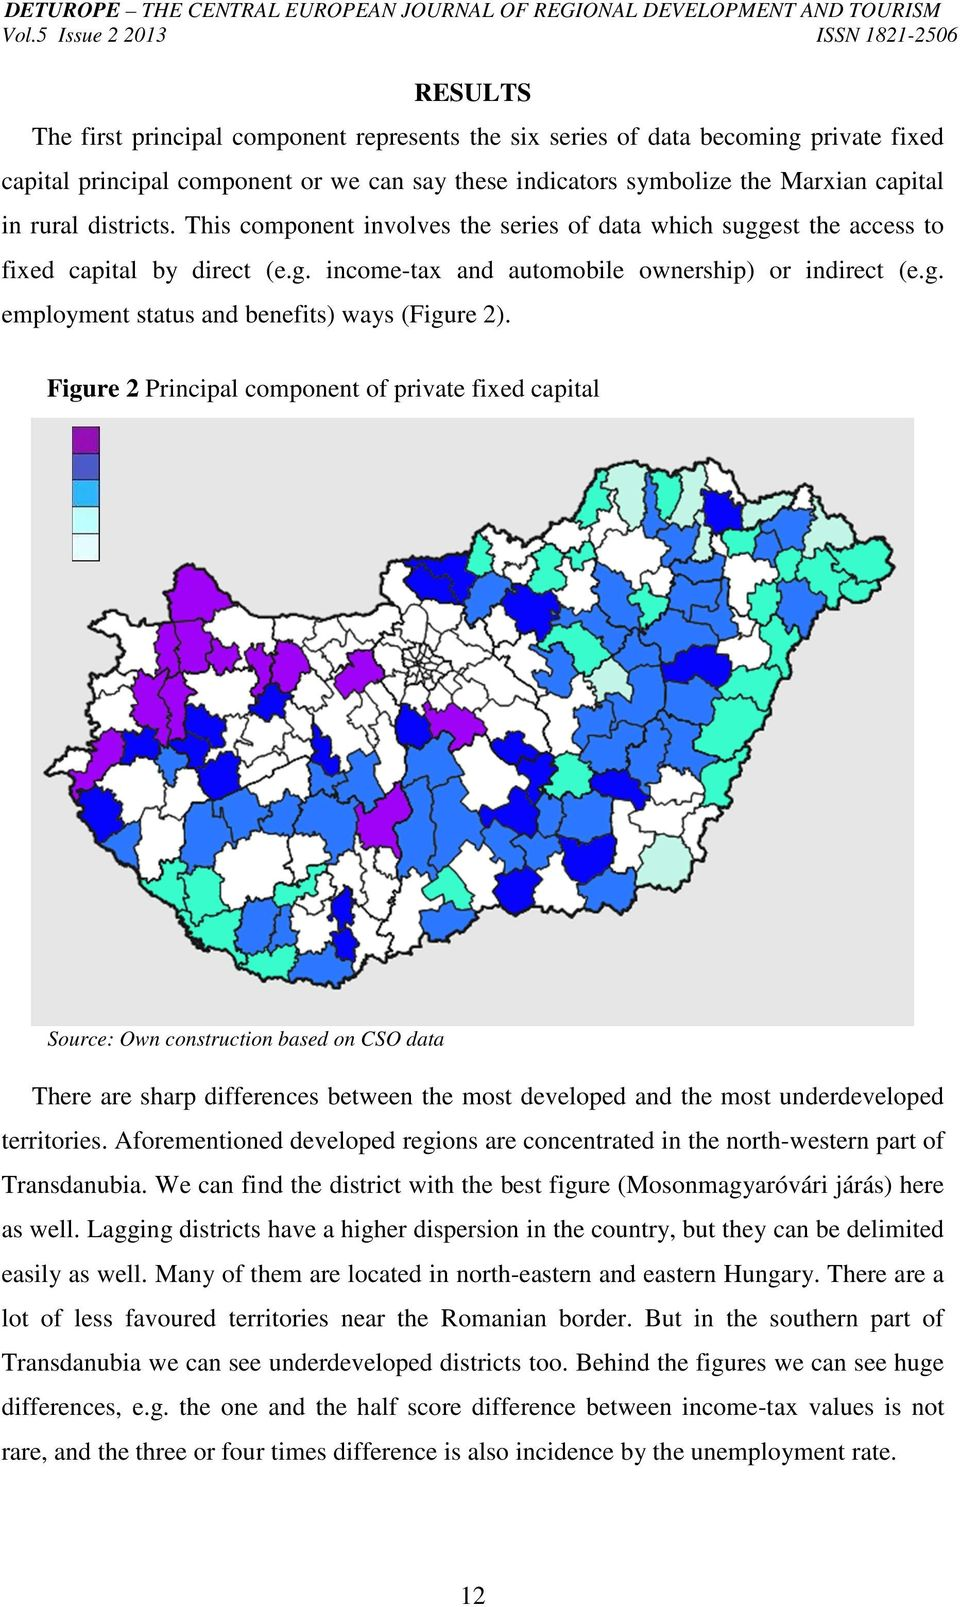 Figure 2 Principal component of private fixed capital Most developed districts (12) Relatively developed districts (21) Slightly developed districts (40) Undeveloped districts (24) Most undeveloped